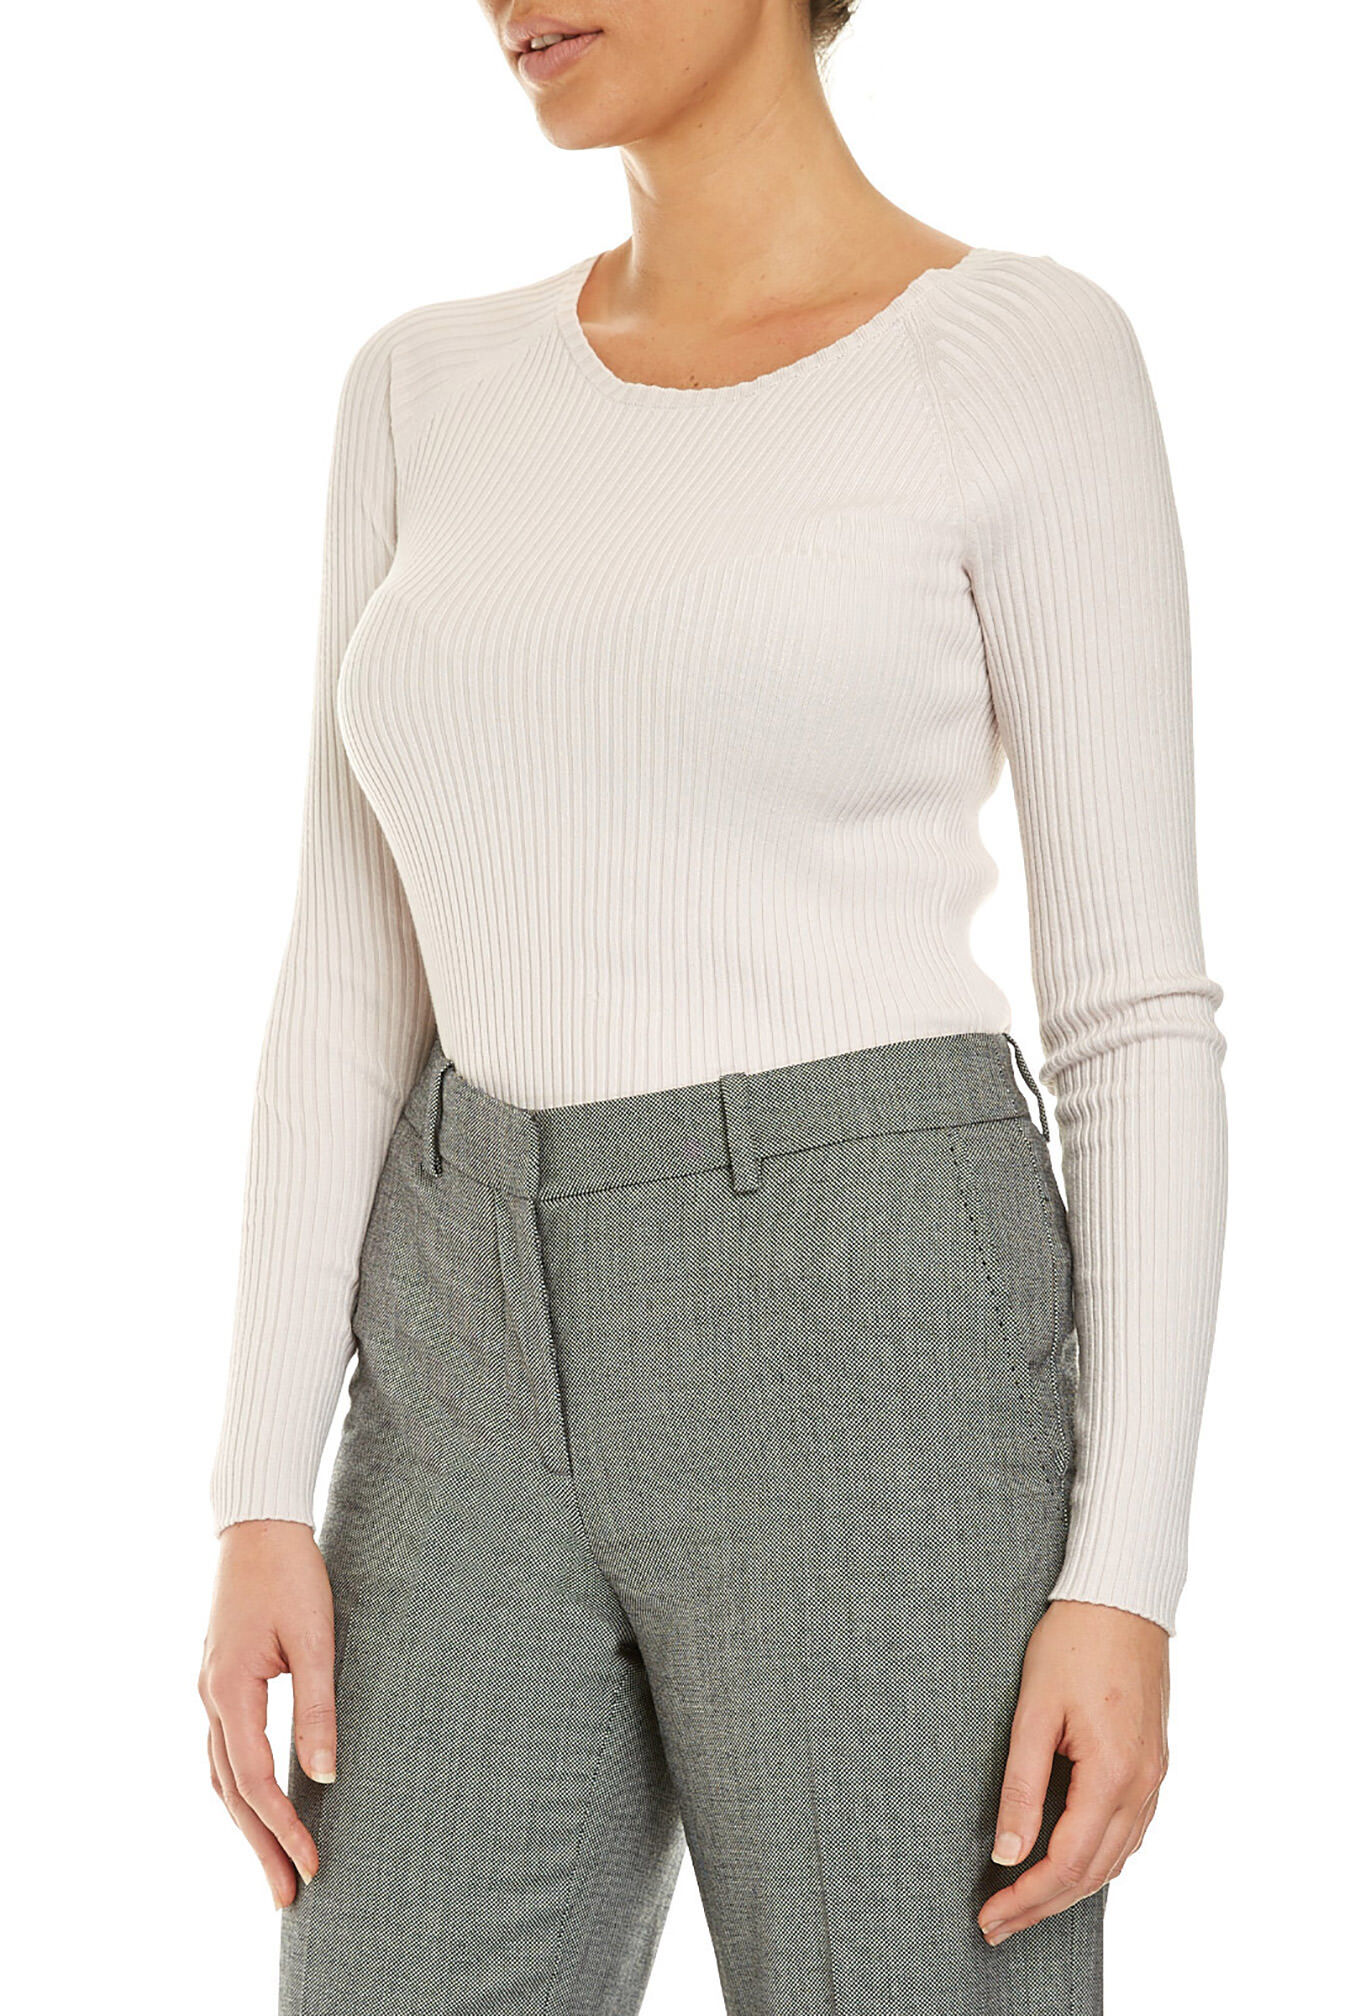 NEW-Sportscraft-WOMENS-Signature-Ribbed-Crew-Neck-Tops-amp-Blouses